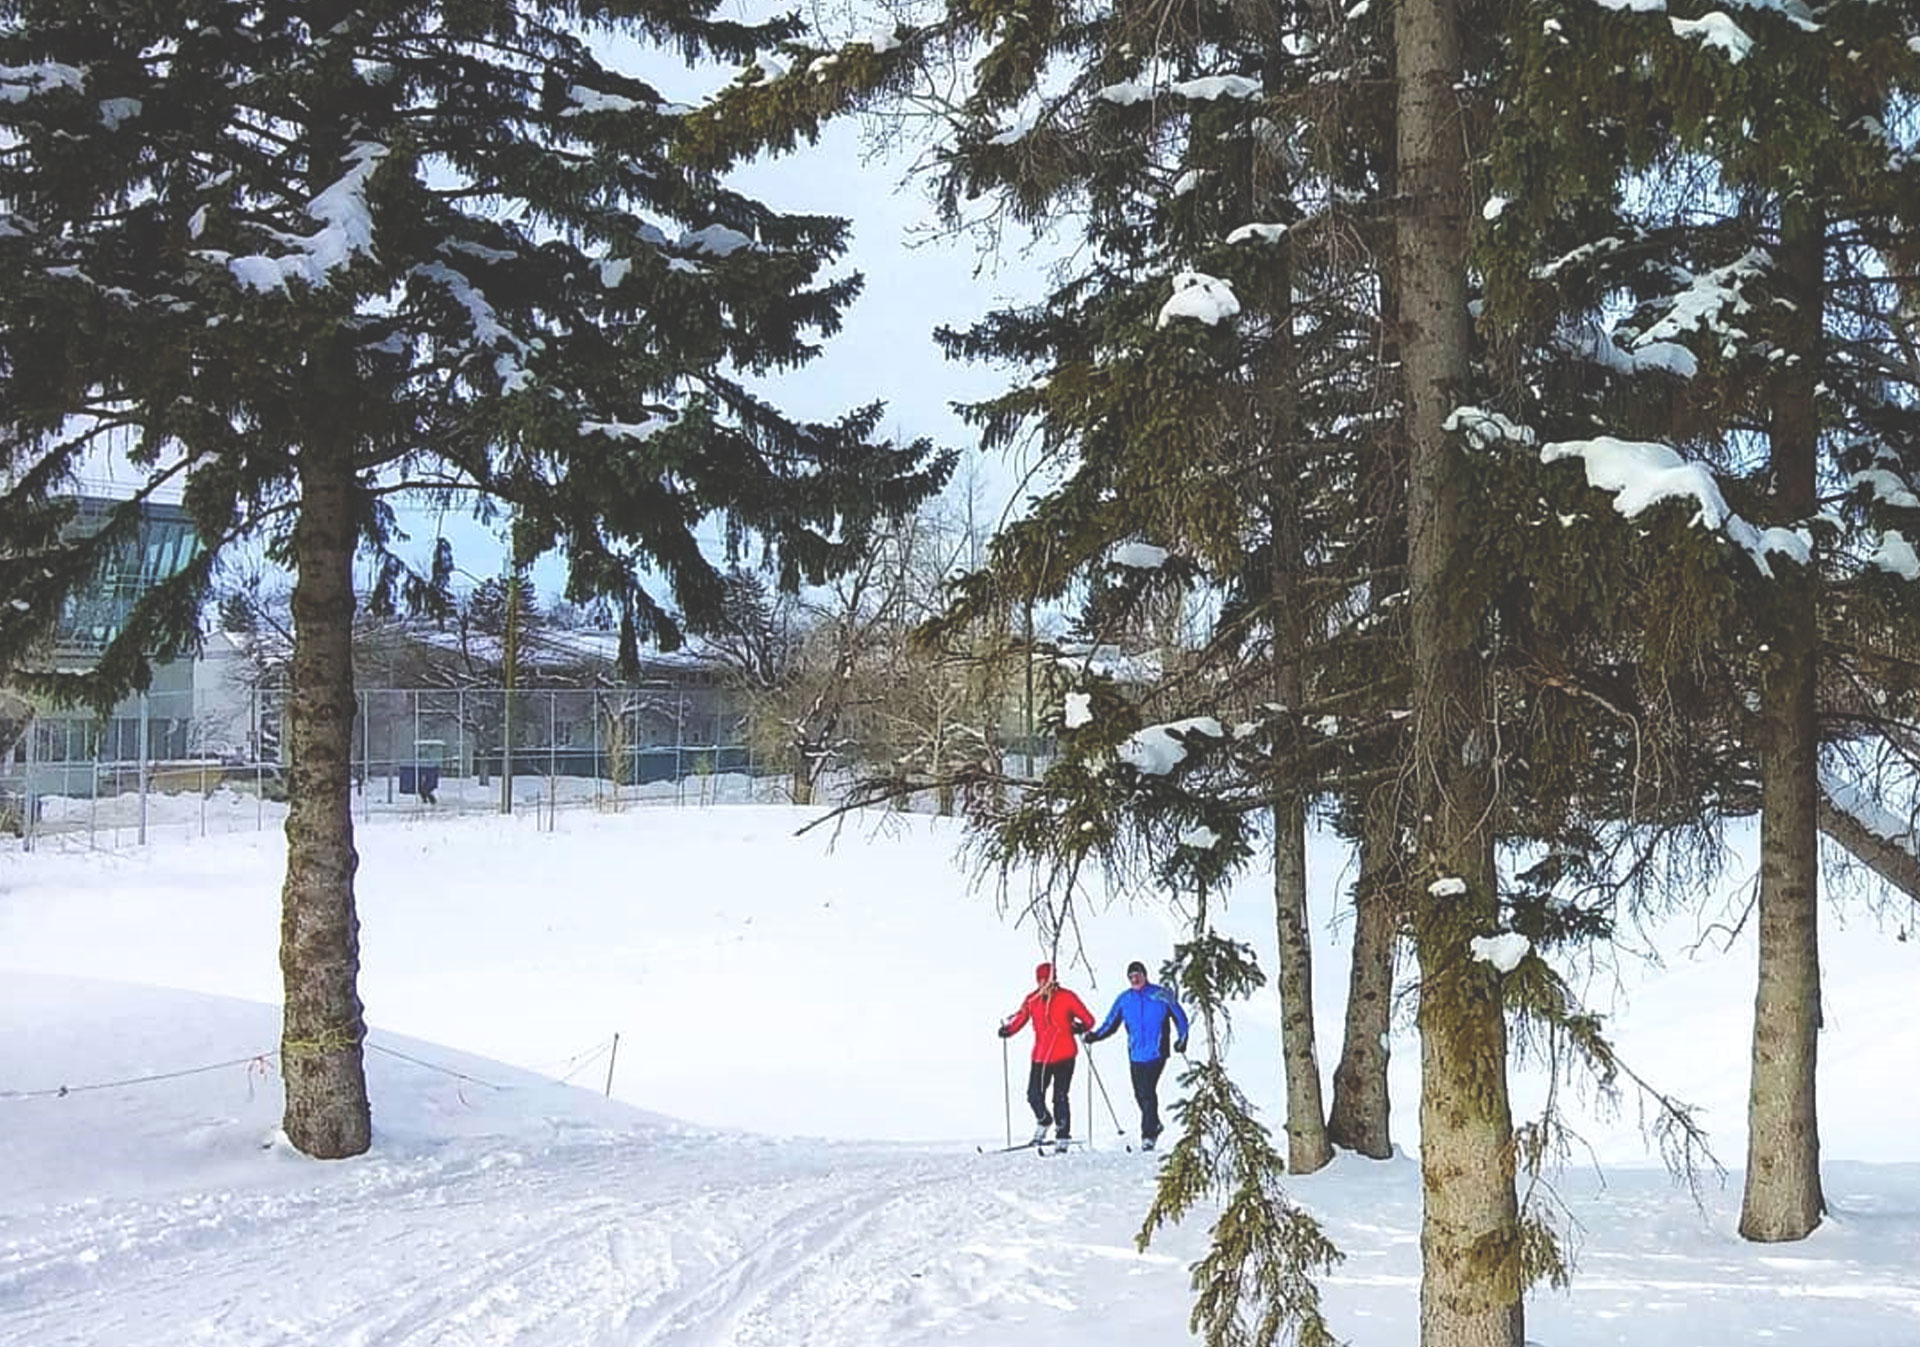 Cross-country skiing at Shaganappi Point Golf Course in Calgary